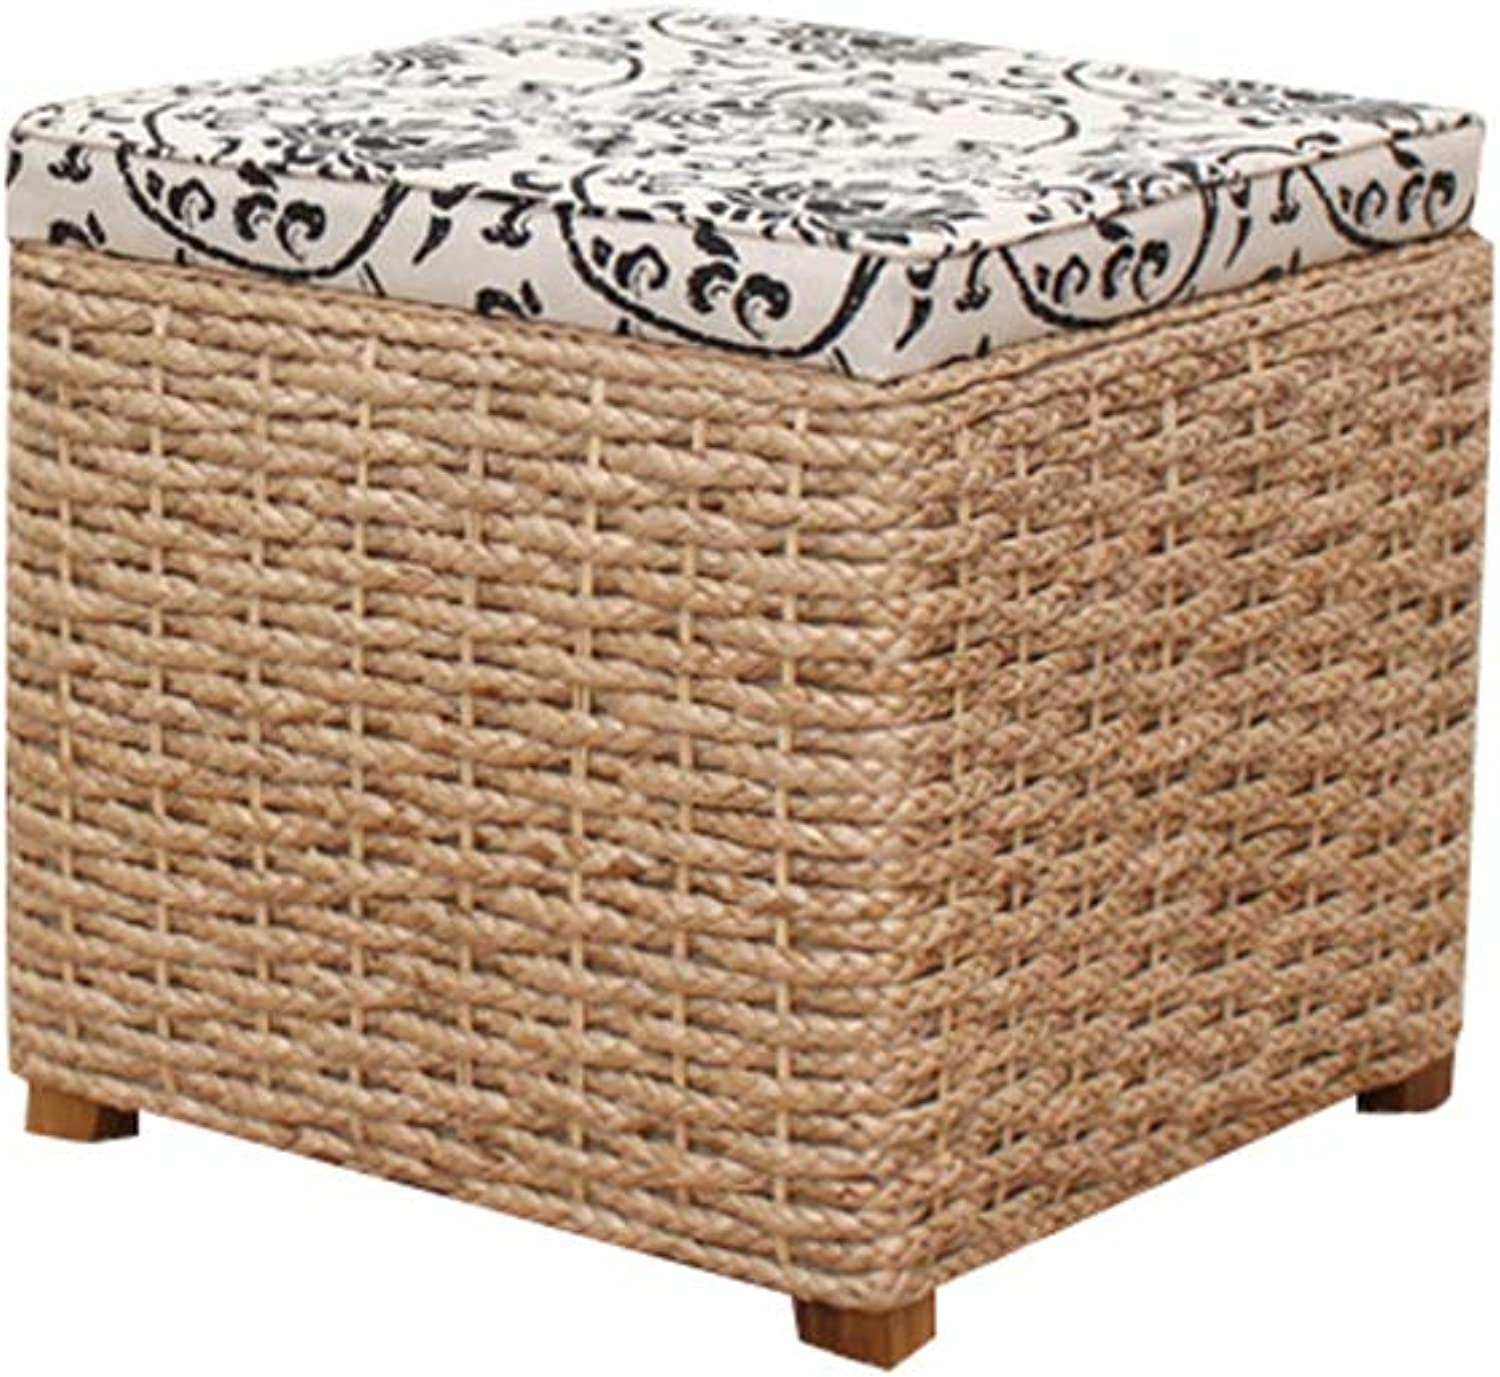 Straw Storage Stool Storage, Hairy Grass Change shoes Toy Storage Storage